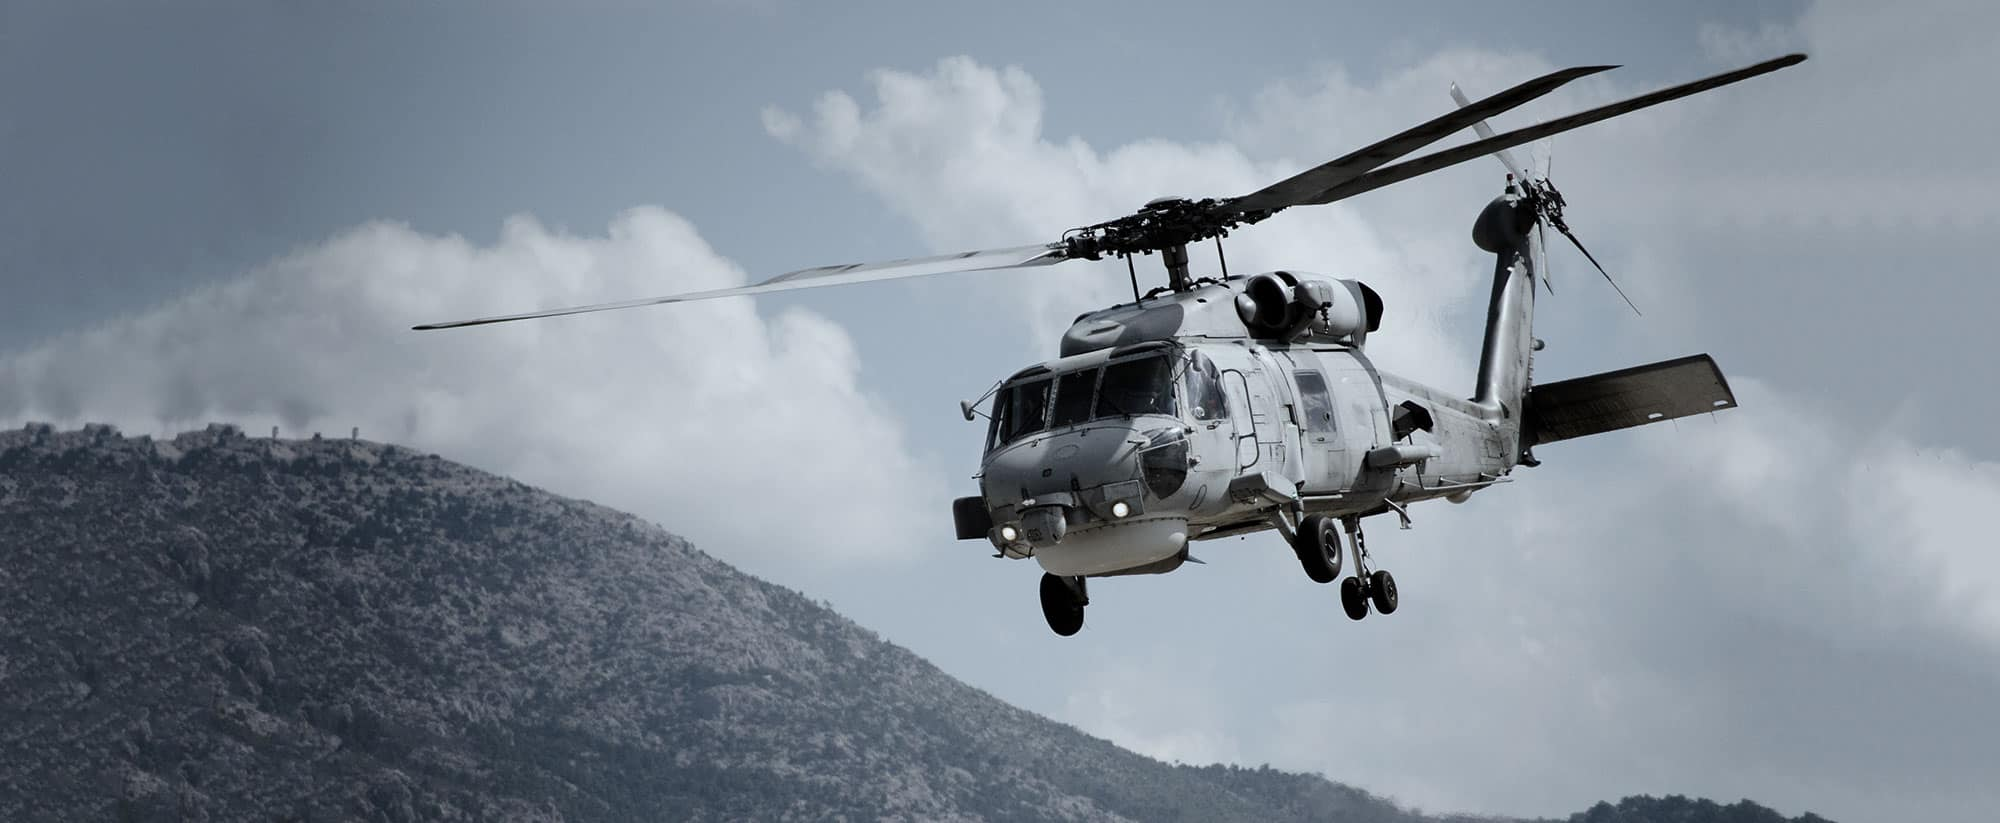 military helicopter with blue force tracker asset tracking